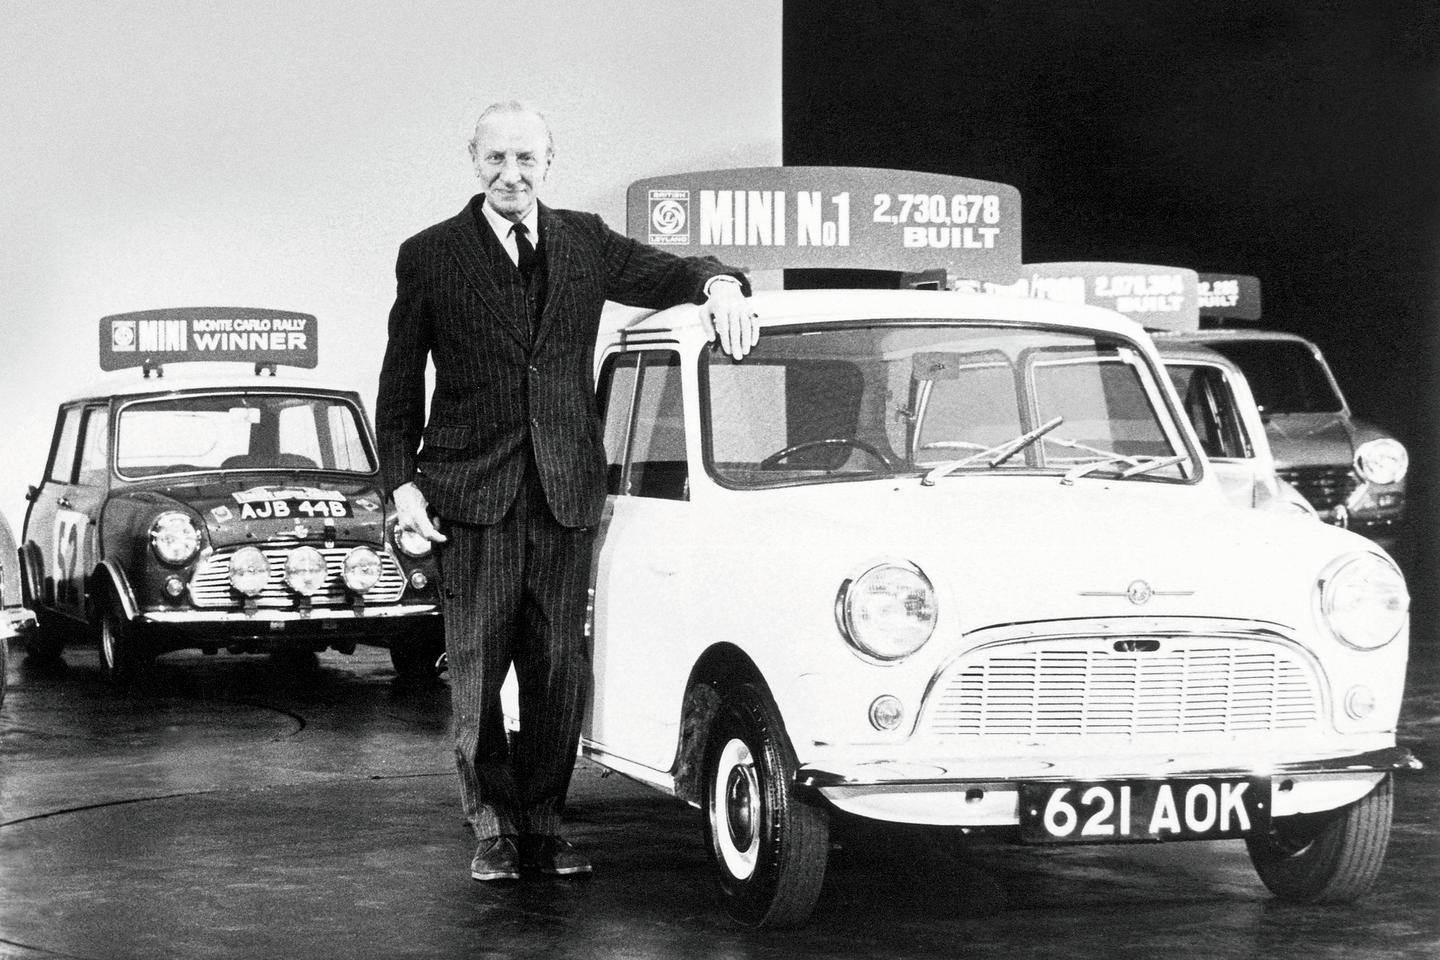 Sir Alec Issigonis celebrates one of the many milestones of the Mini dynasty